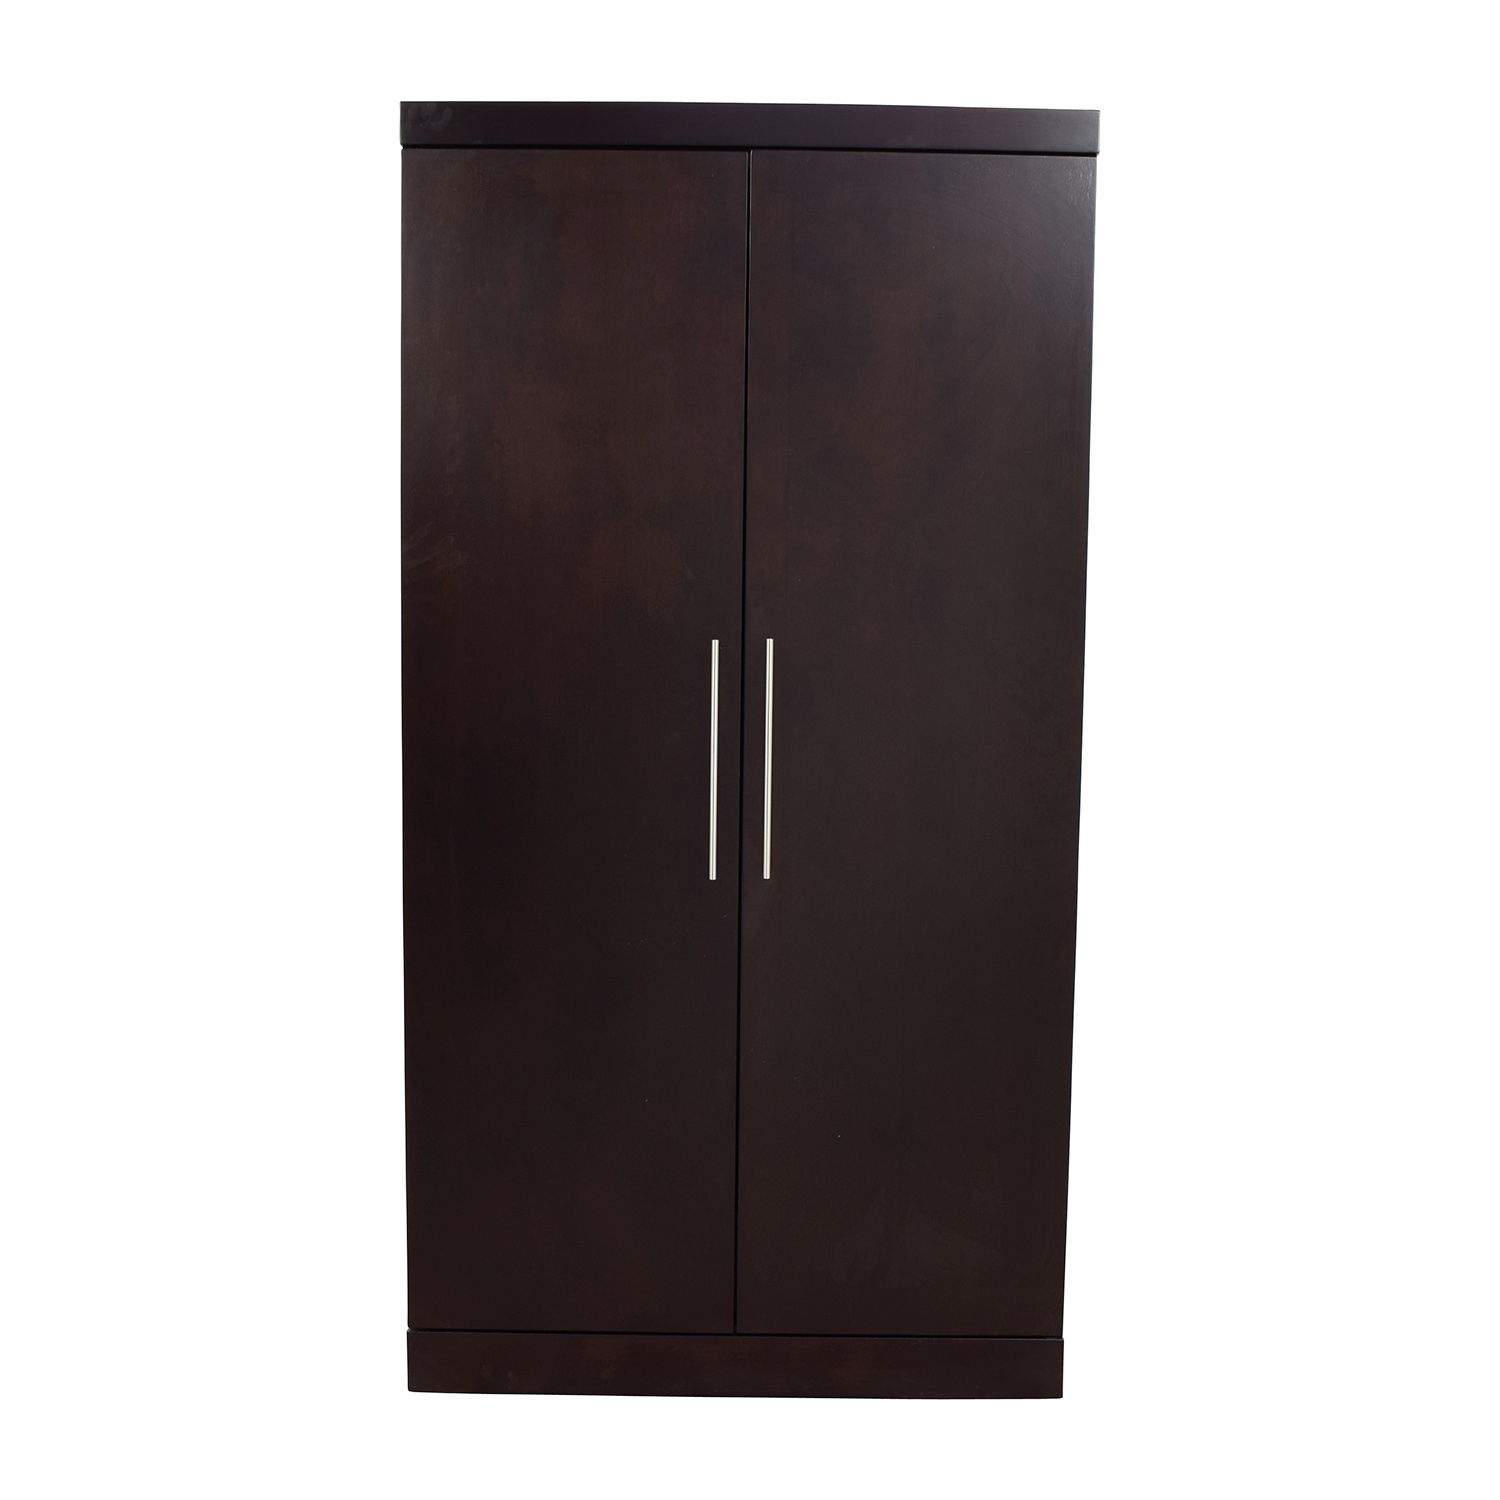 Raymour and Flanigan Raymour & Flanigan Wood Wardrobe nj